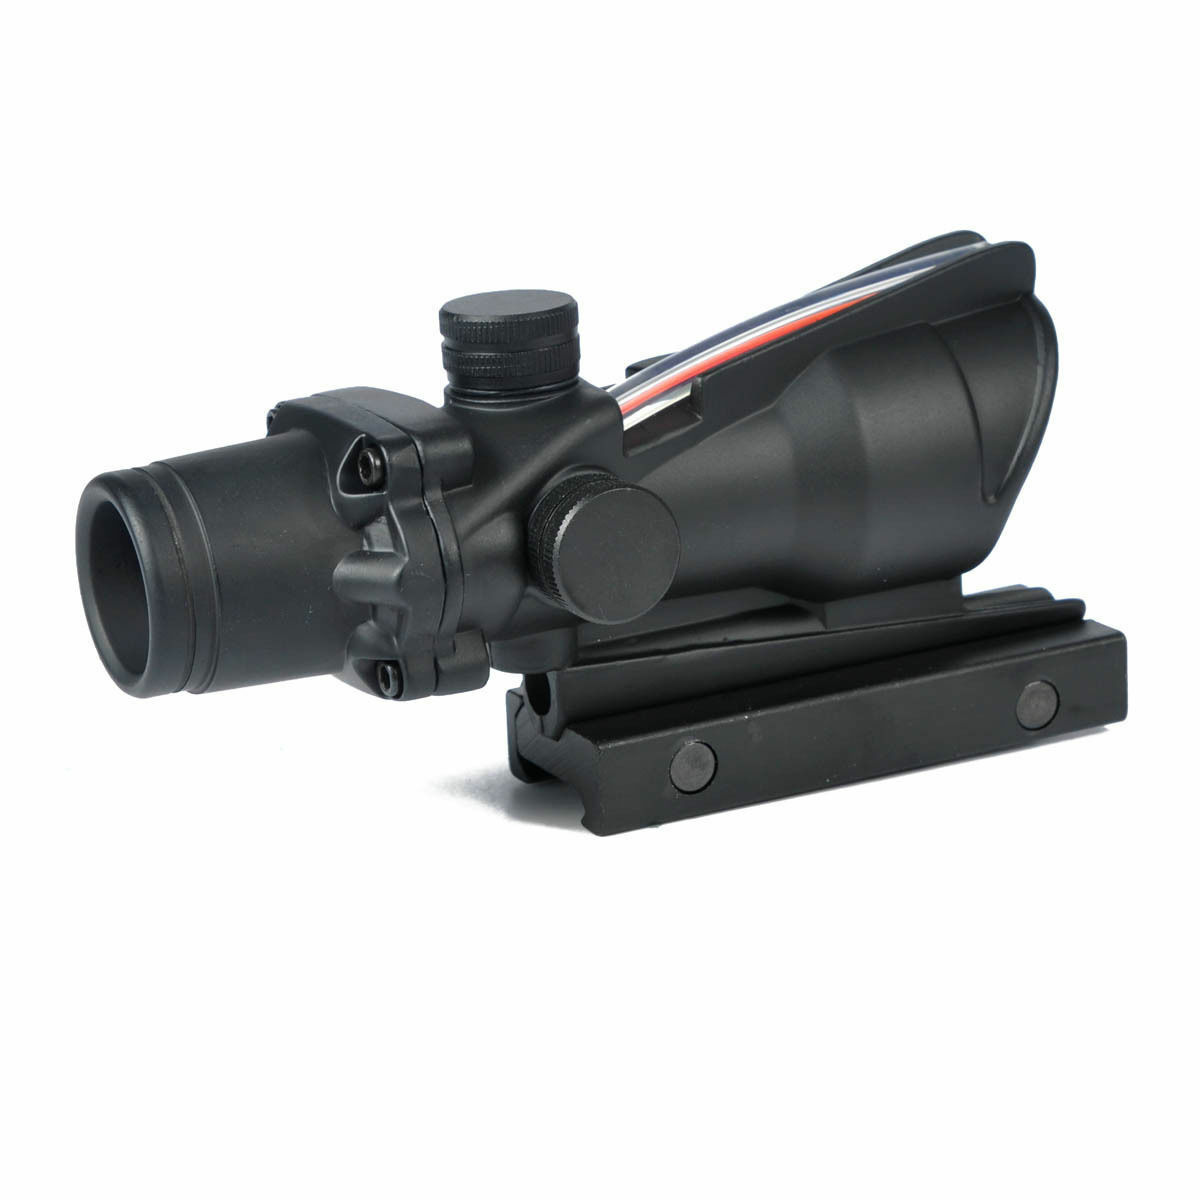 Military Hunting ACOG Style 1x32 Red Dot Sight Scope with Optic Fiber